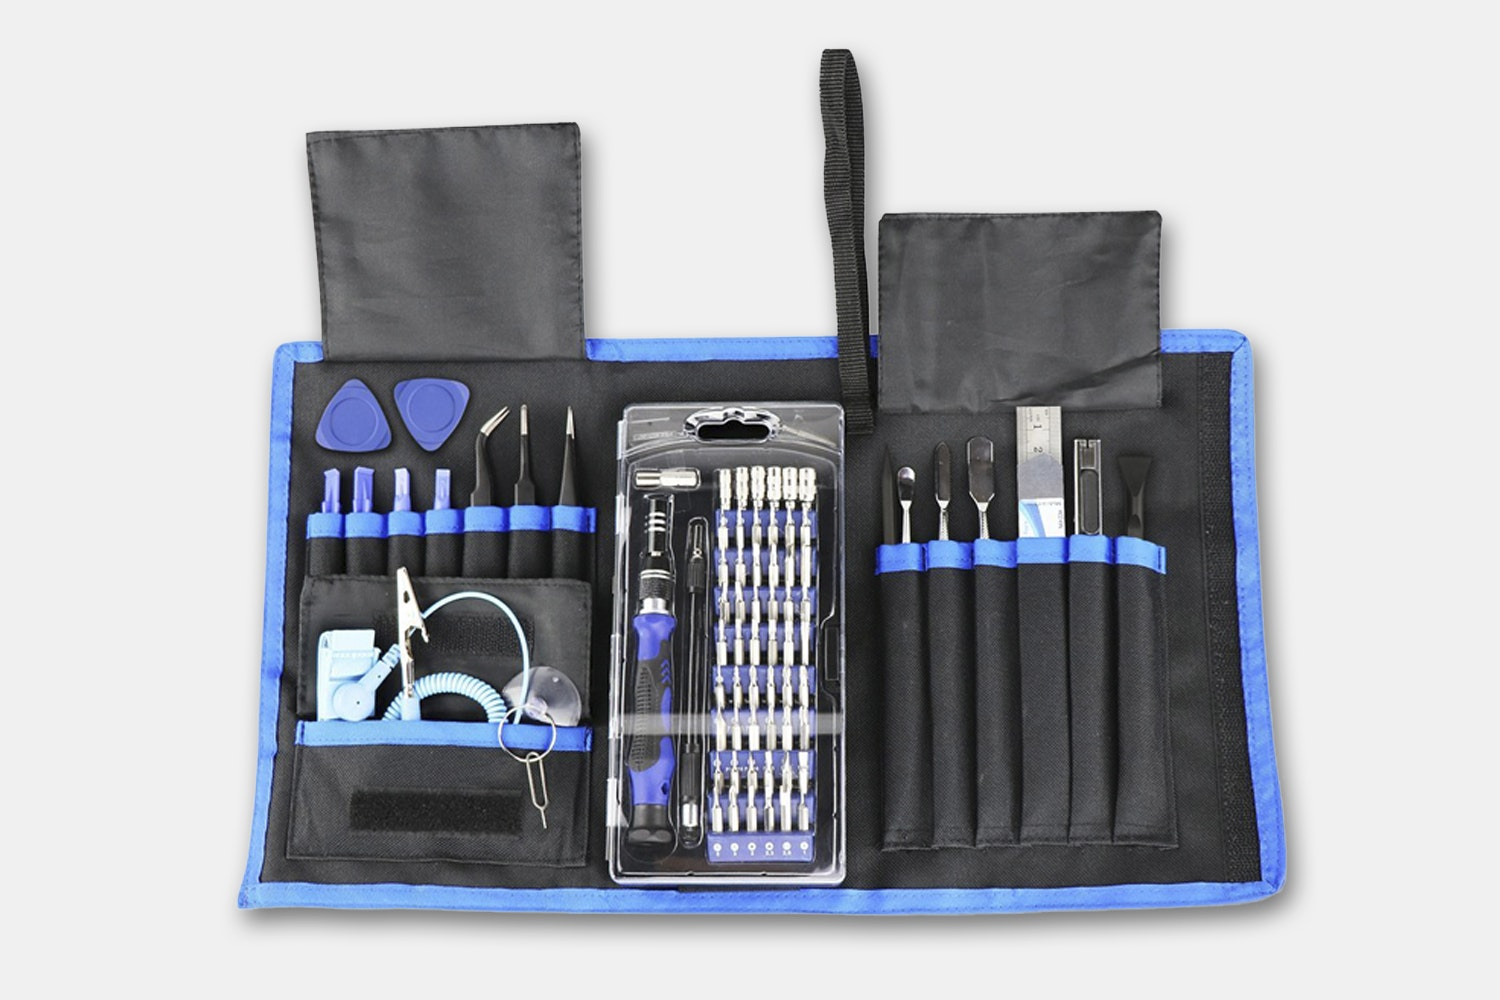 76-in-1 Magnetic Pro Repair Tool Set